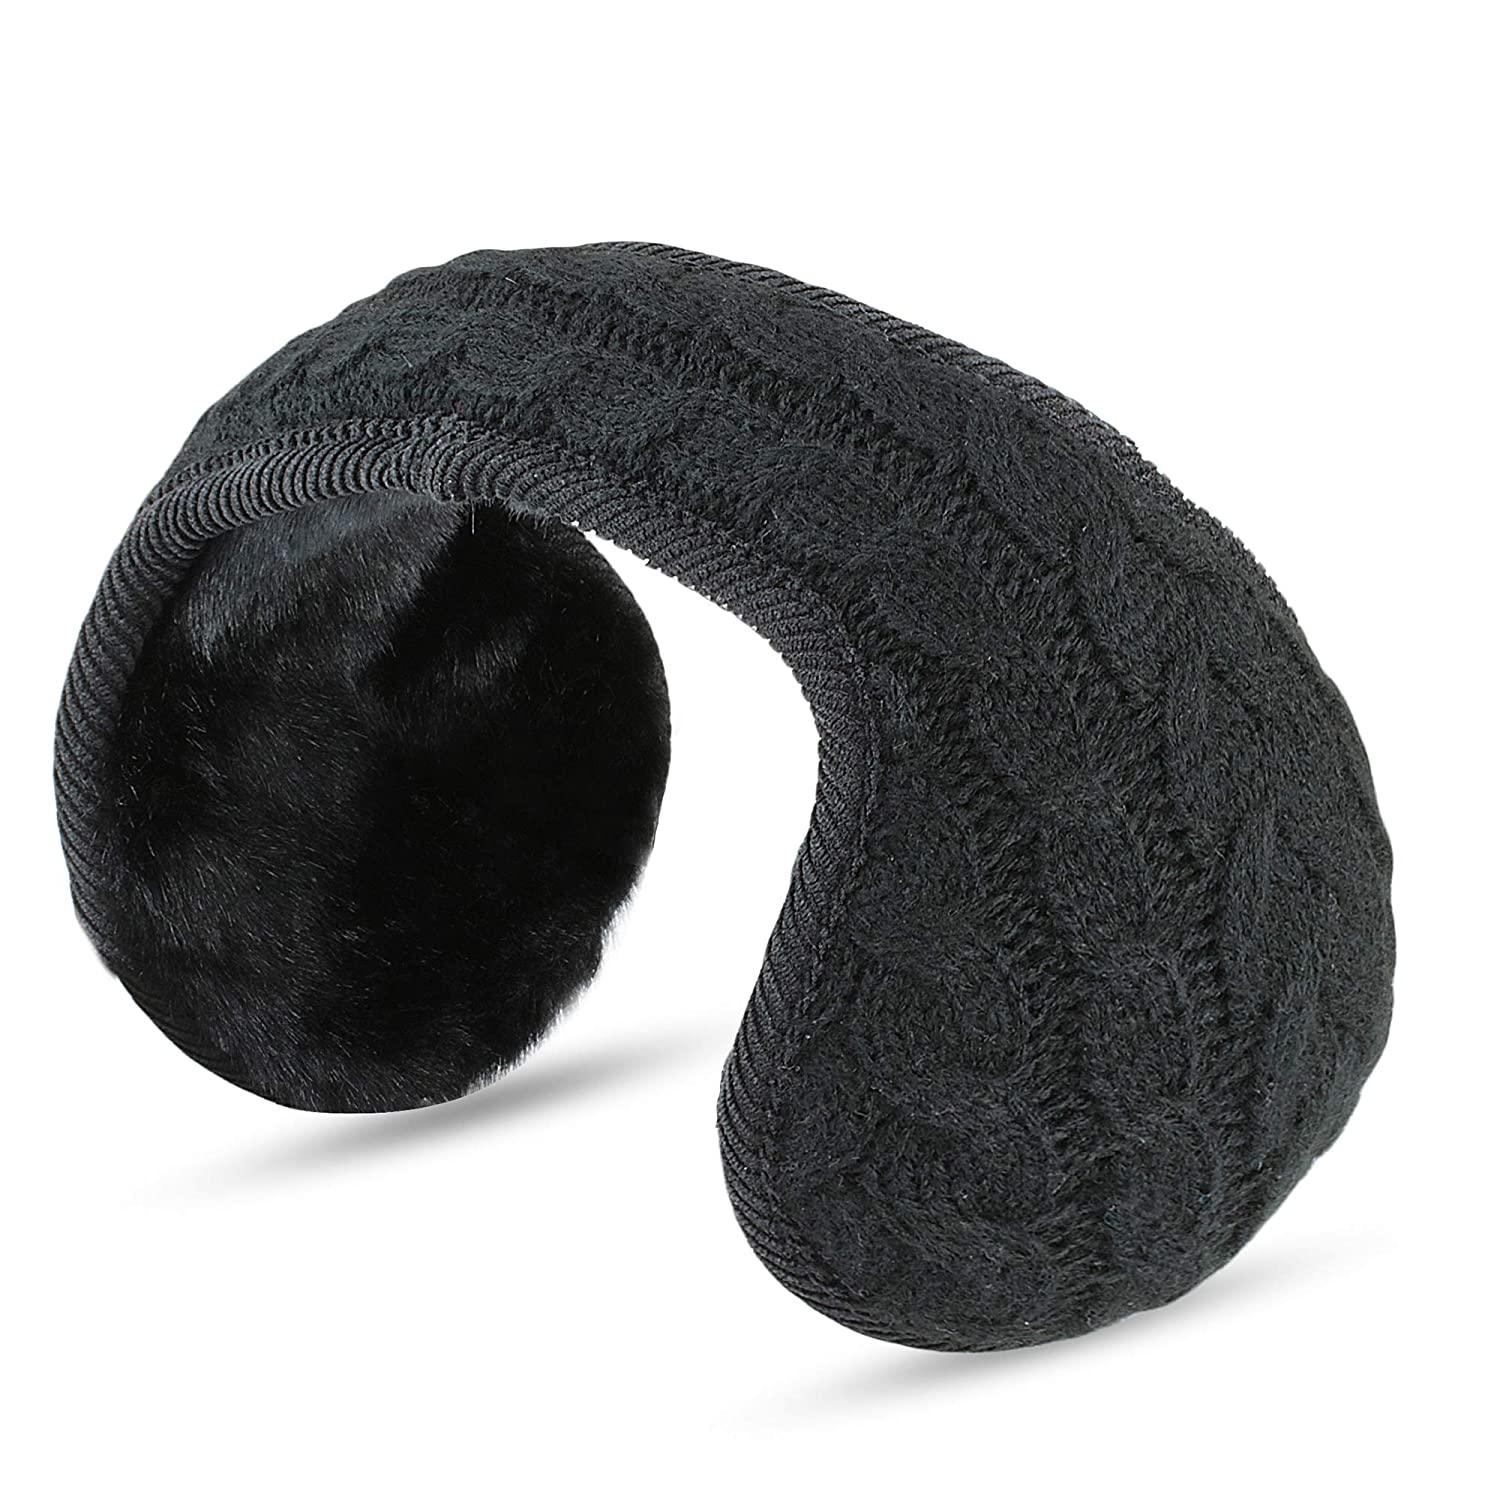 Ear Warmers For Men & Women: Adjustable Headband Warm Ear Muffs: Super Soft Winter Earmuffs